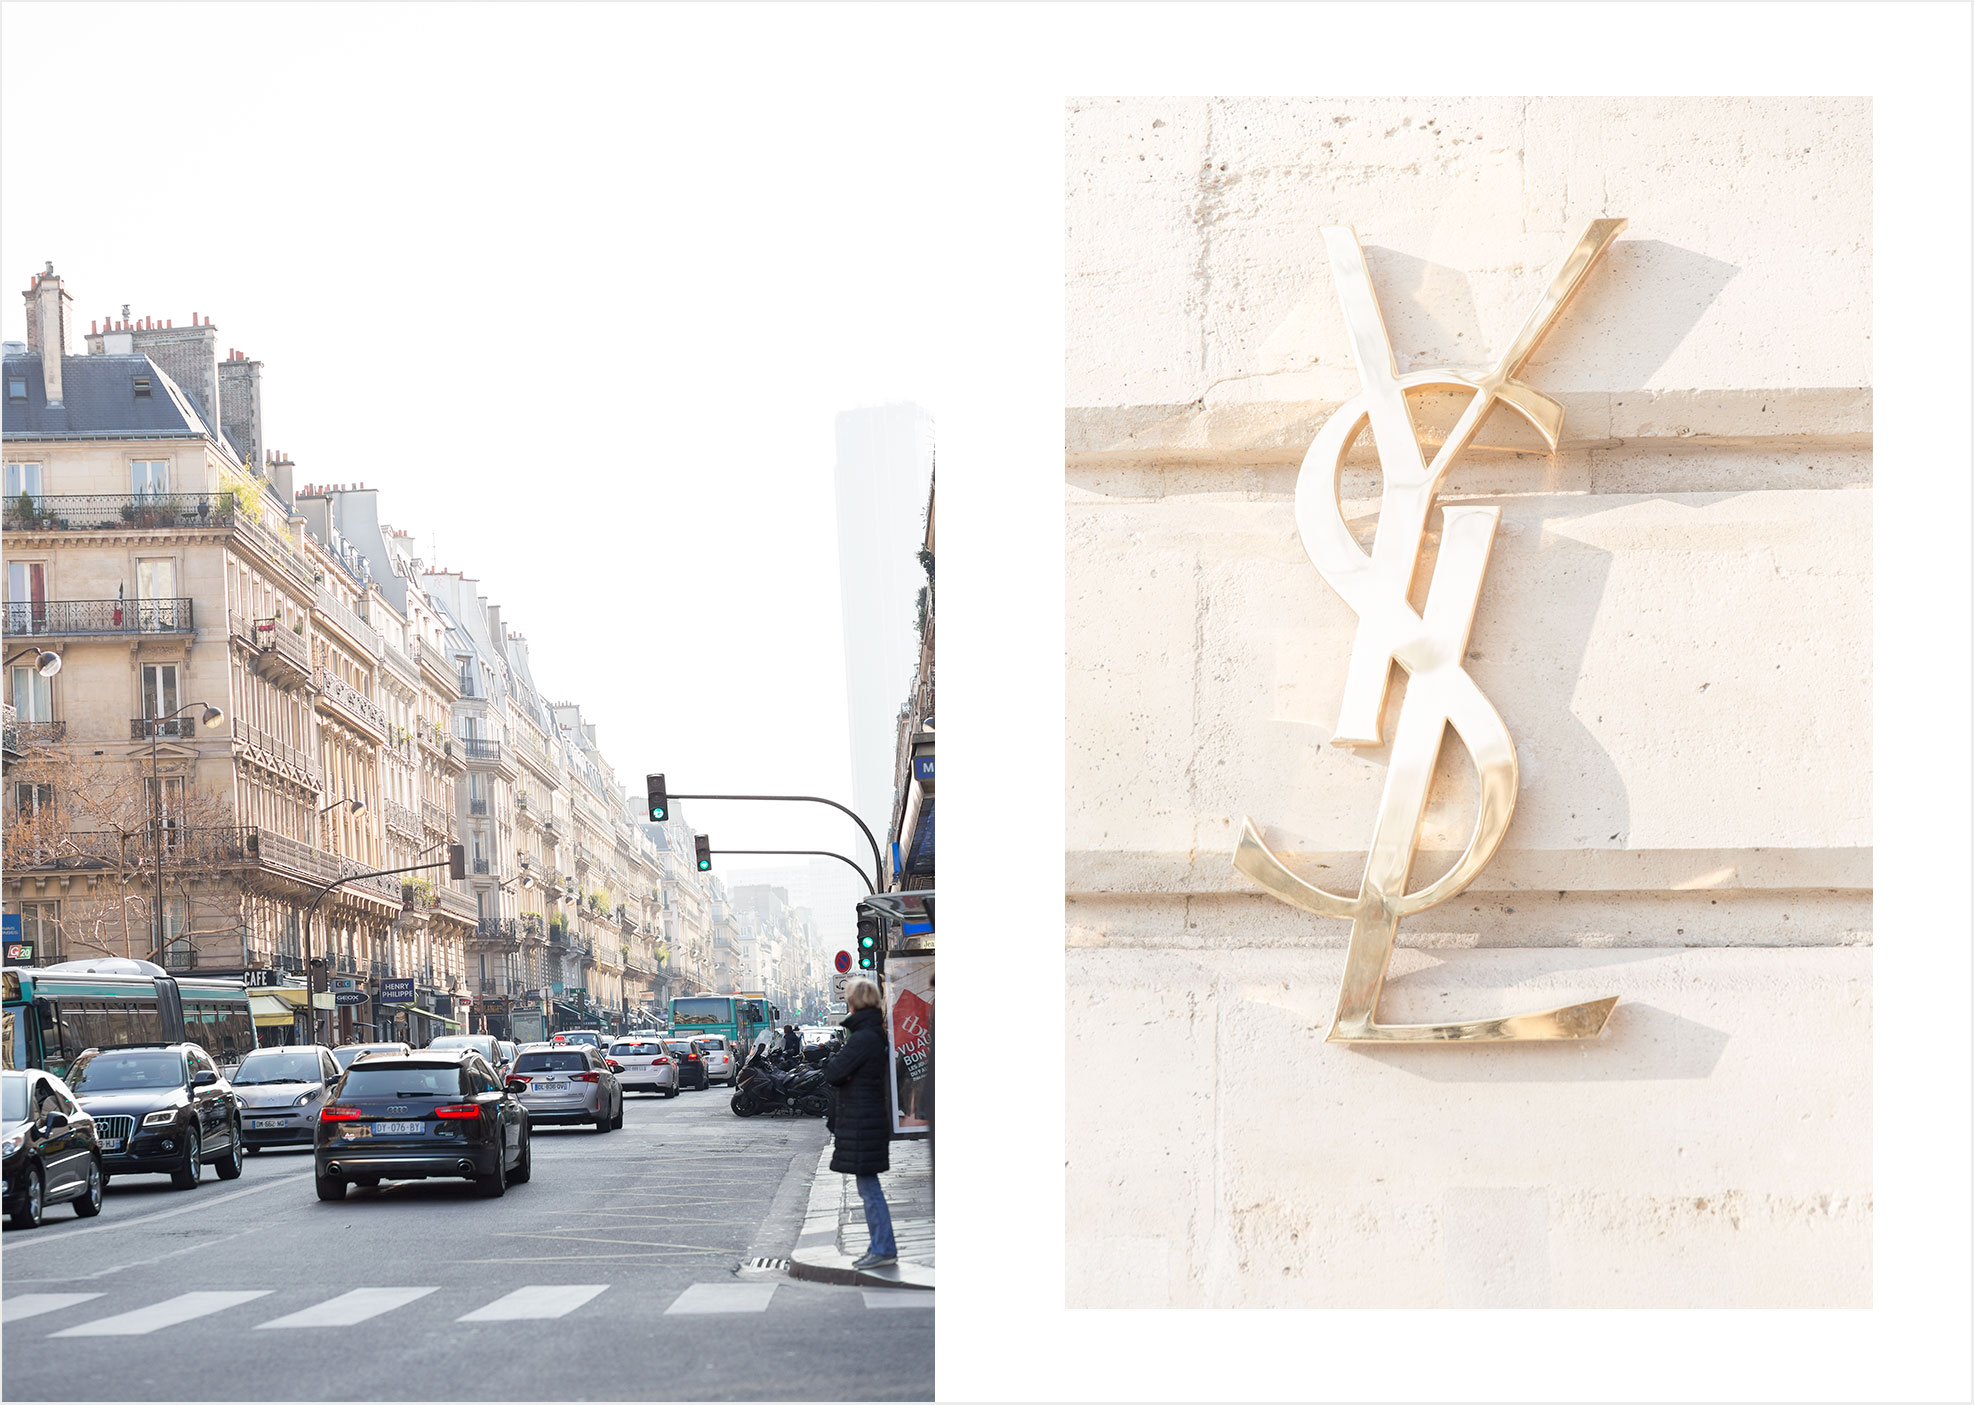 Paris-streets-Sunny-day-in-Paris,-France-photographed-by-Armenyl.com